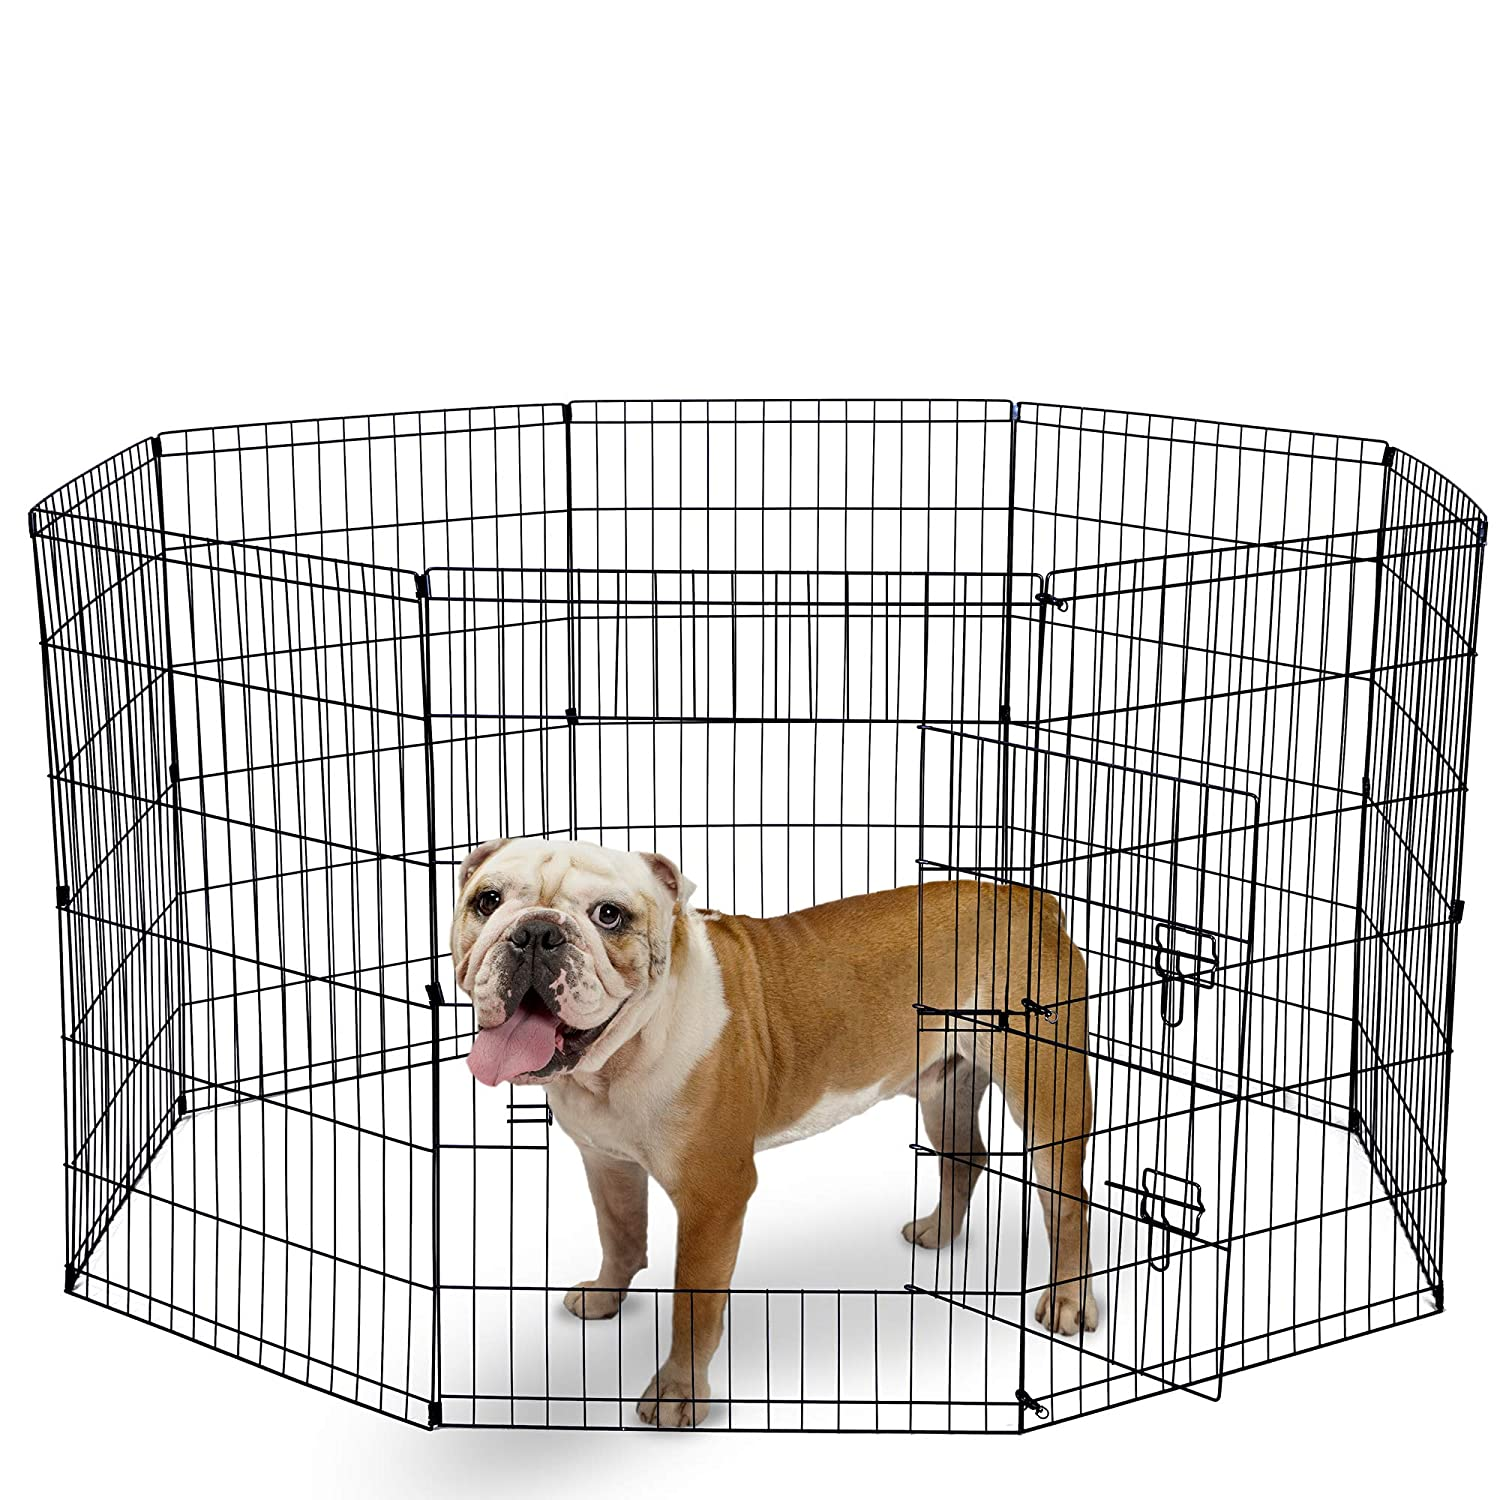 Paws Pals Dog Exercise Pen Pet Playpens for Dogs – Puppy Playpen Outdoor Back or Front Yard Fence Cage Fencing Doggie Rabbit Cats Playpens Outside Fences with Door – Metal Wire 8-Panel Foldable